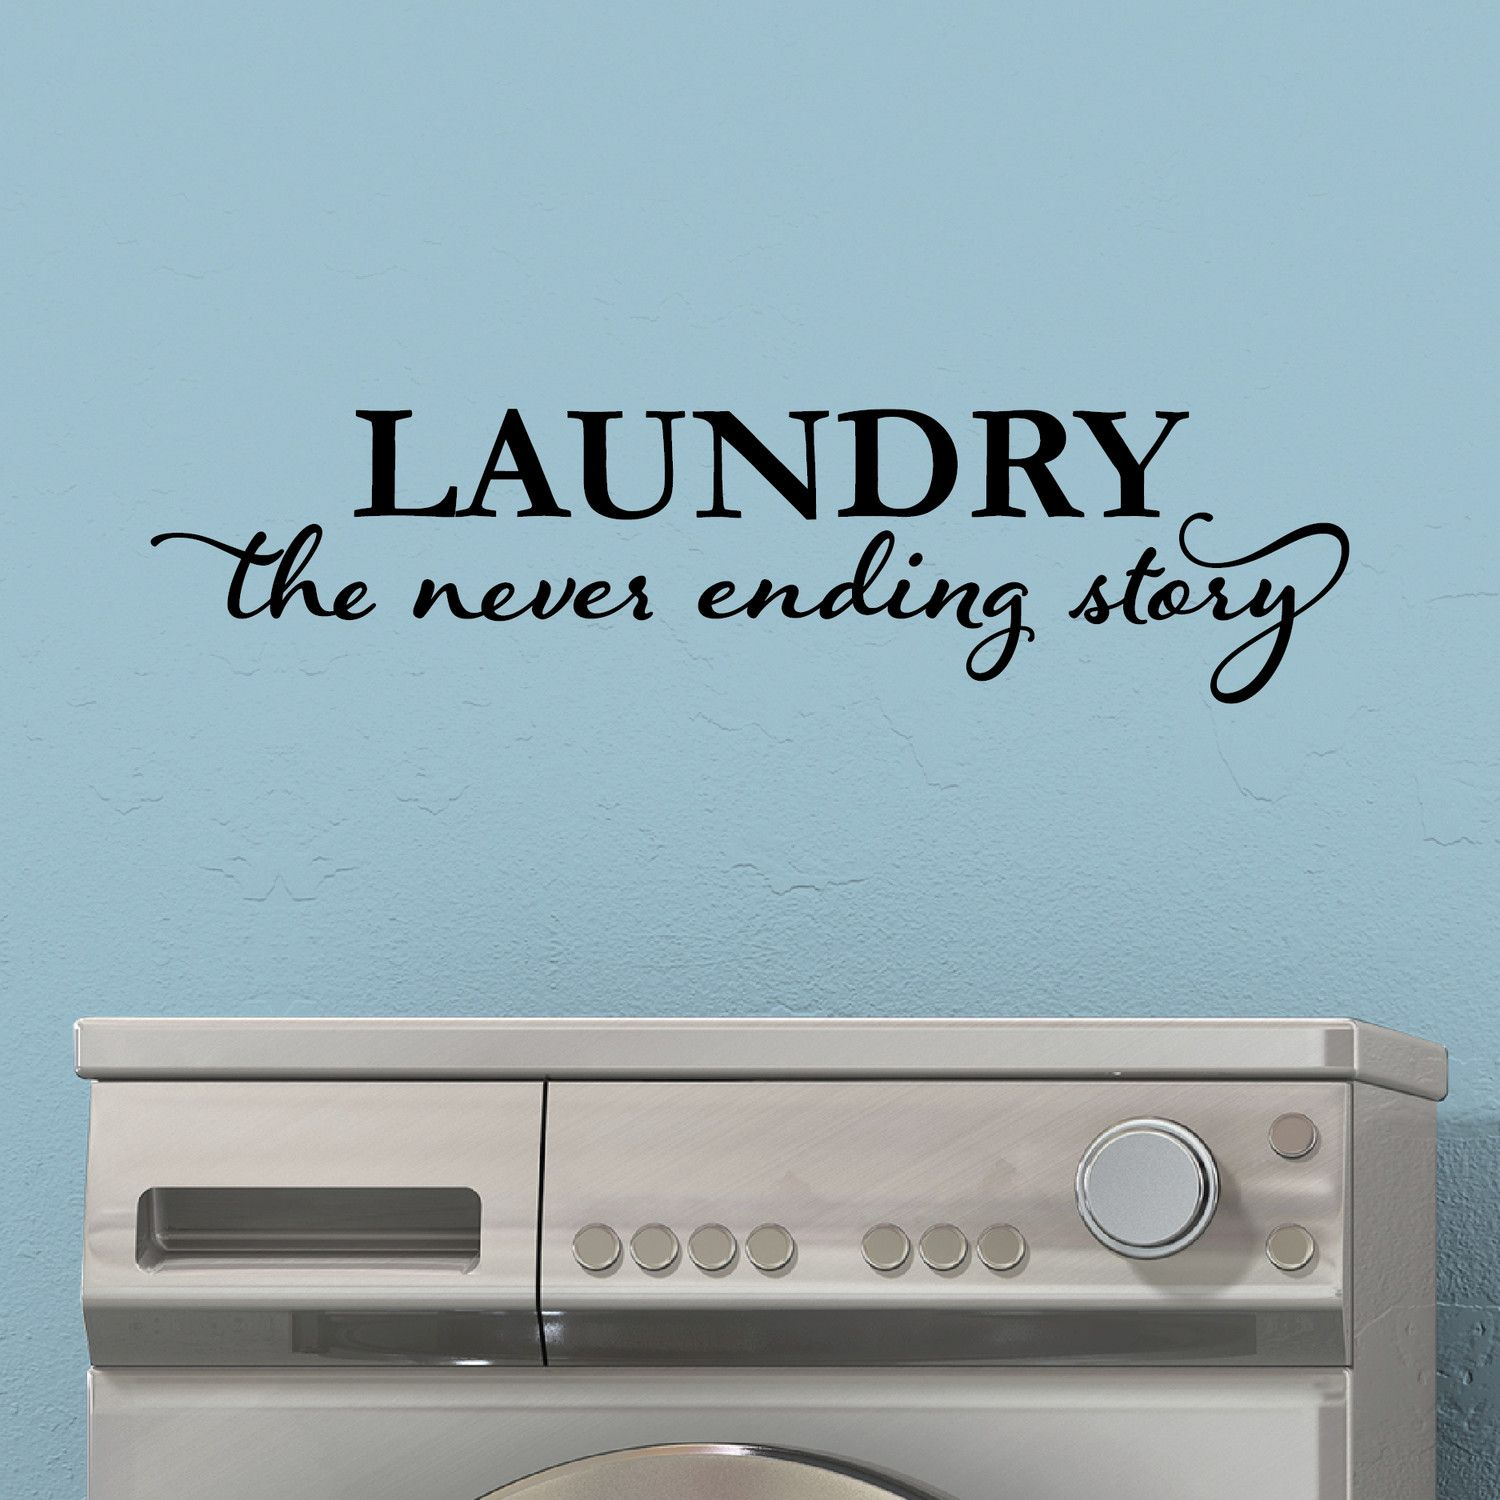 Laundry Room Wall Sayings Belvedere Designs Llc Laundry Never Ending Story Wall Decal